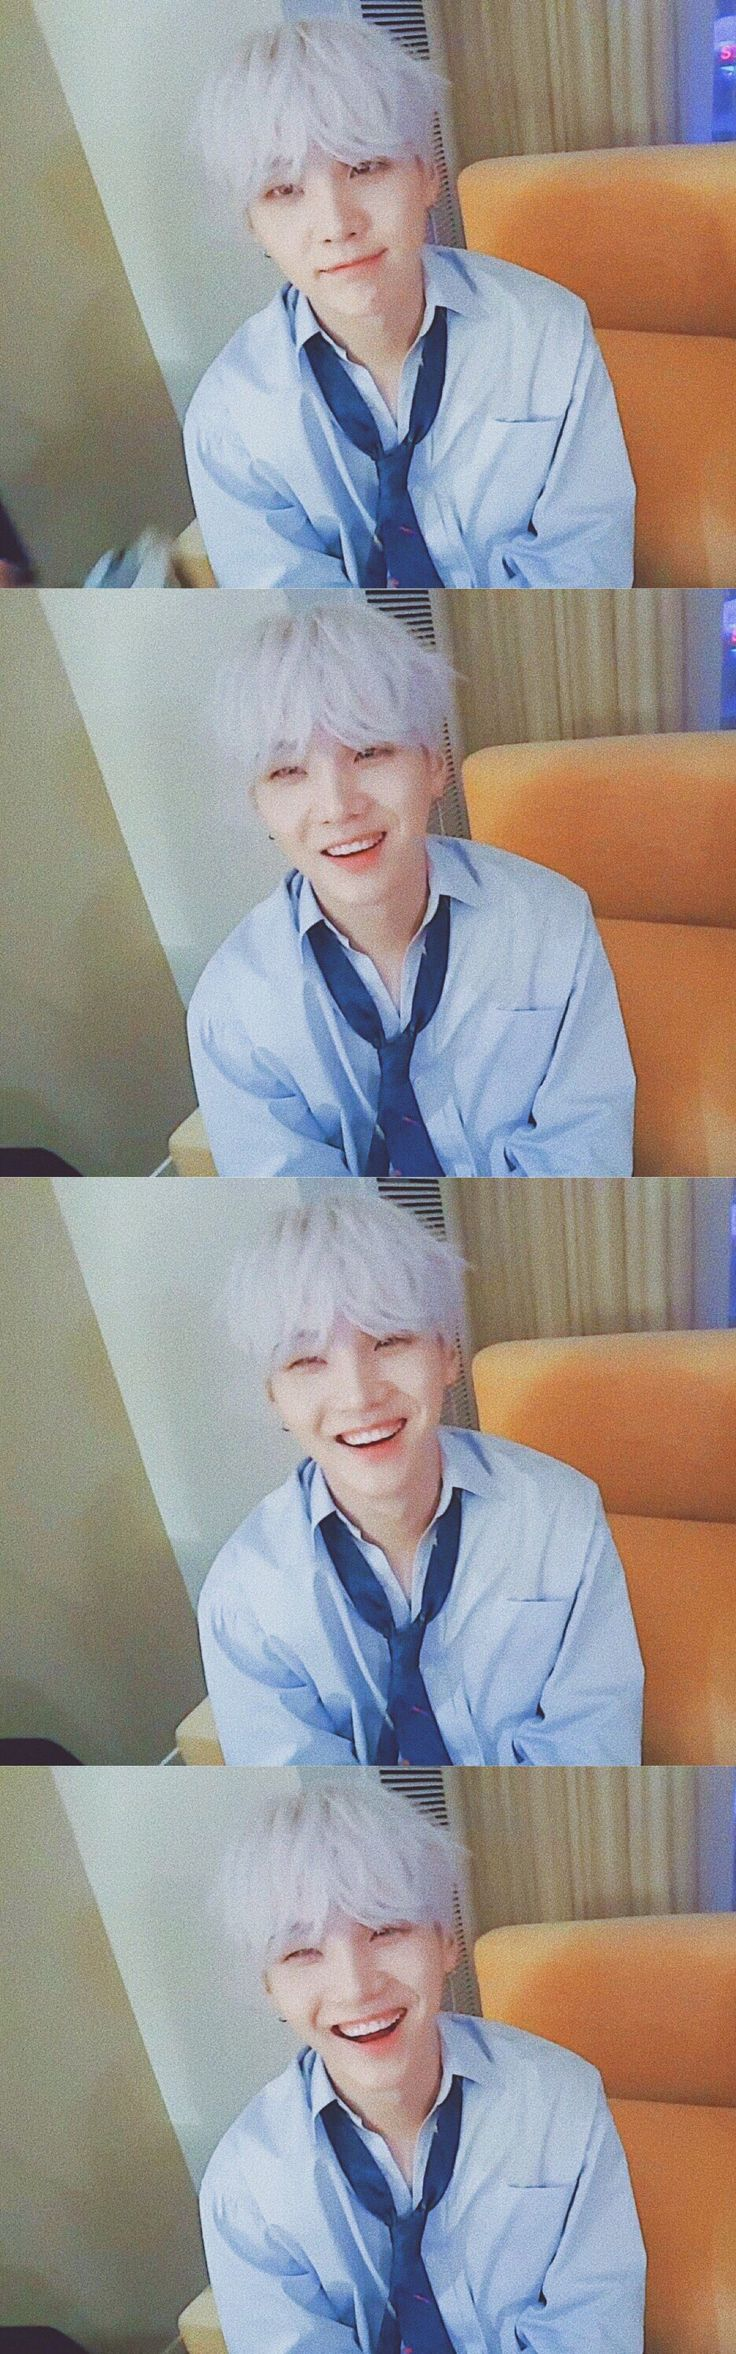 SUGA // BTS in AMAs // BTS live on the V App! He looks like an anime character here :3